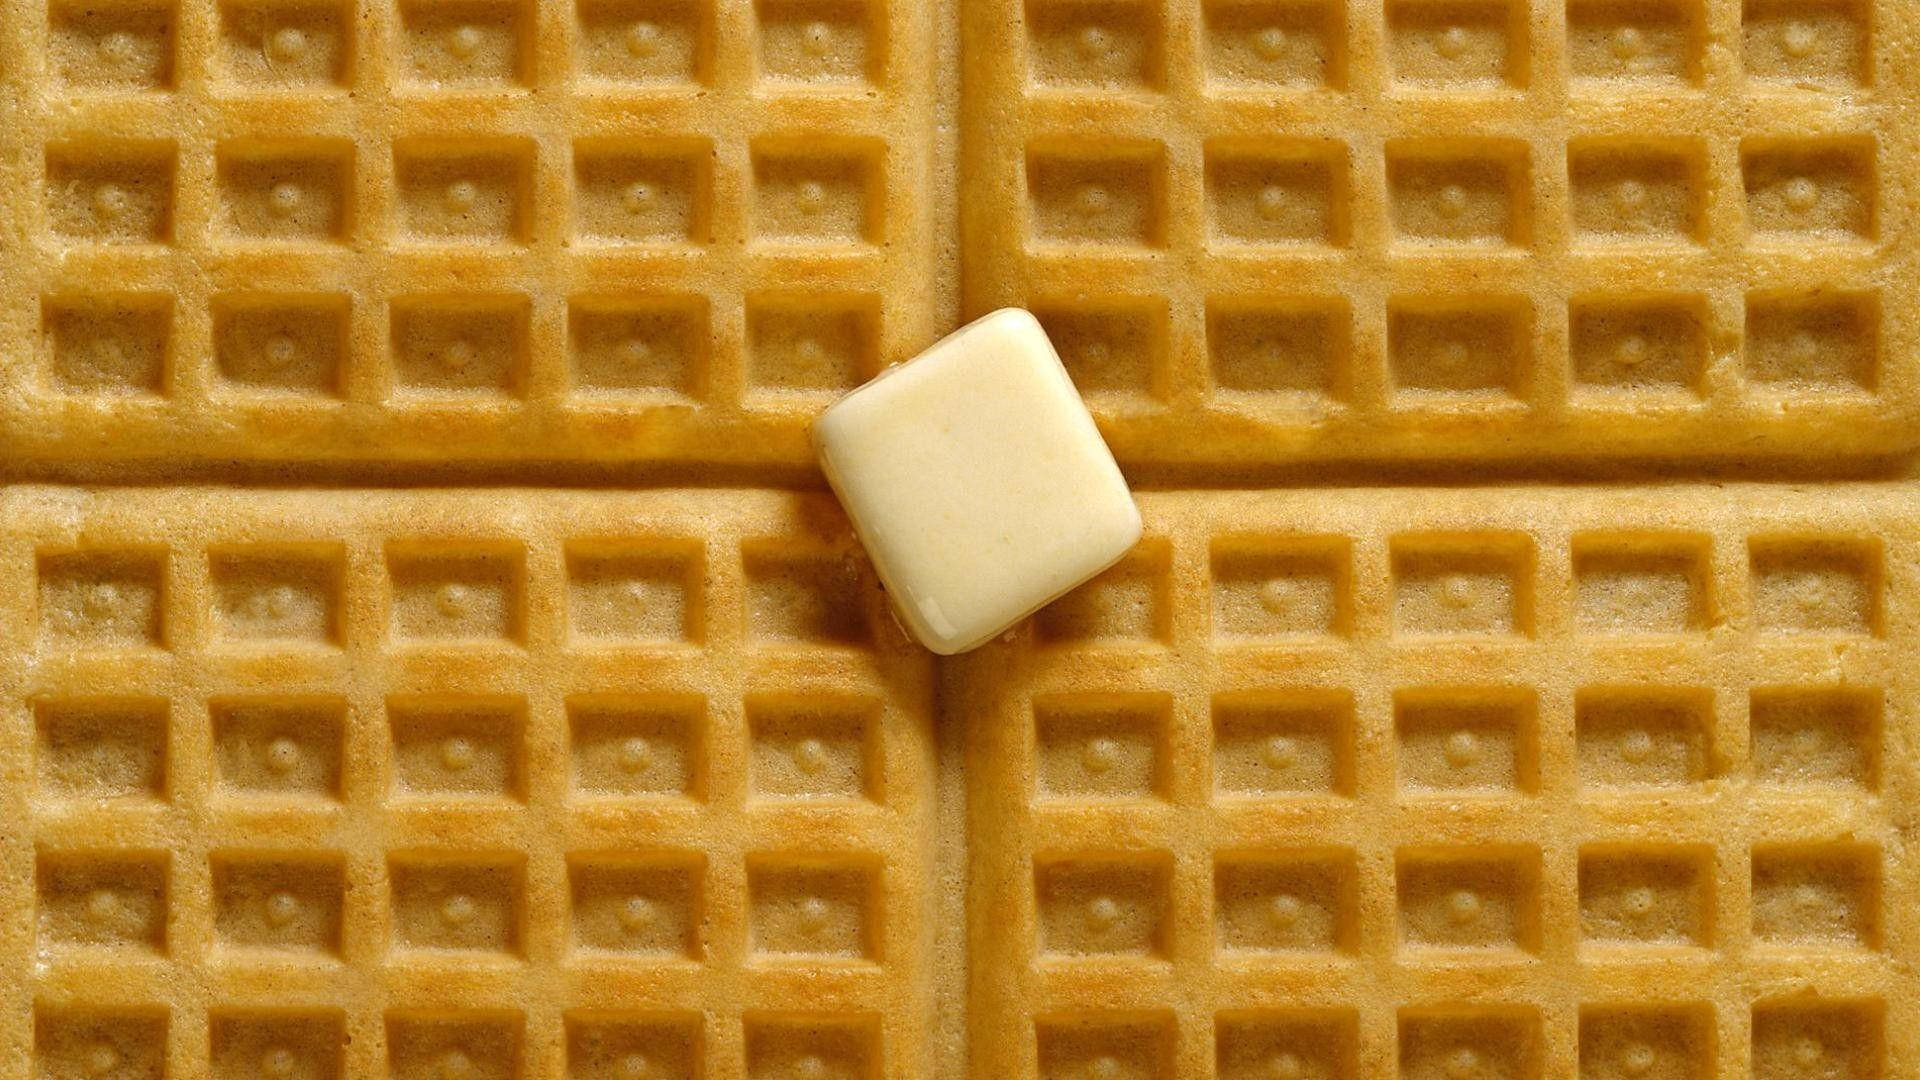 Pat of butter on baking wallpapers and images - wallpapers ...